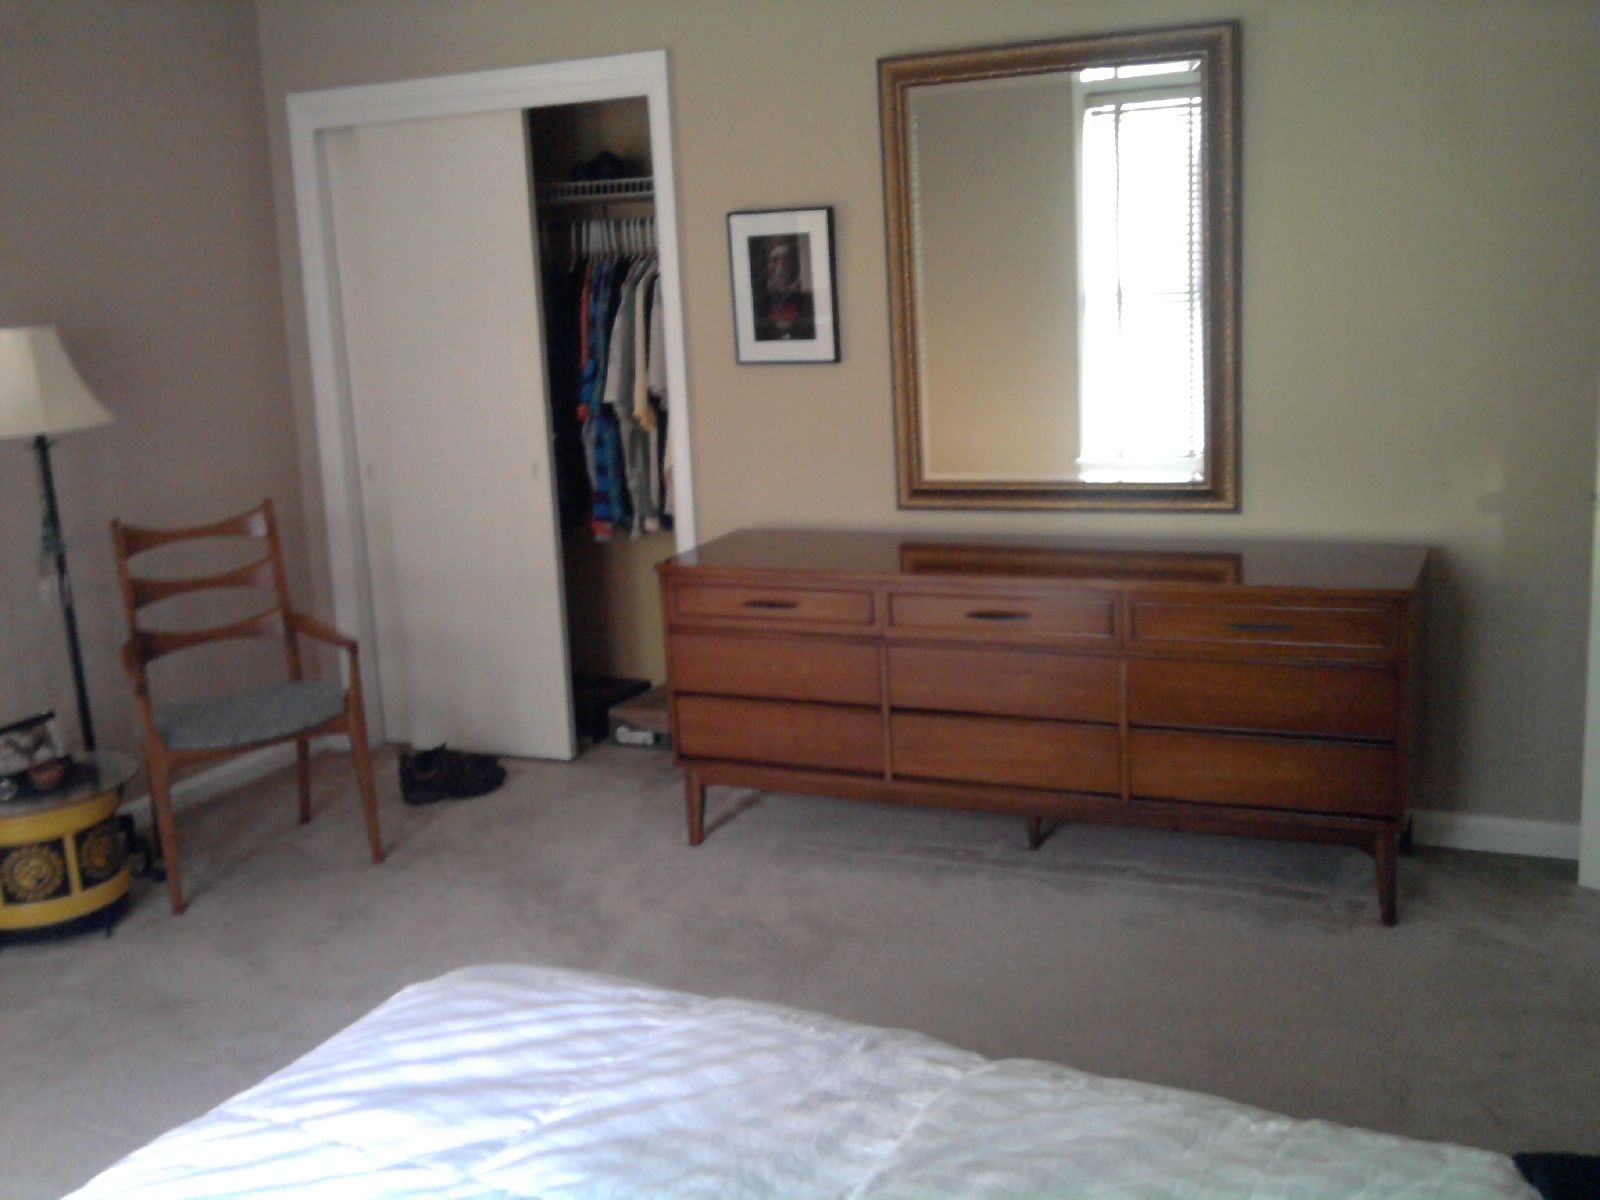 60s Bedroom Csr Danish Modern Finds Here Is A Nice 60 Year Old